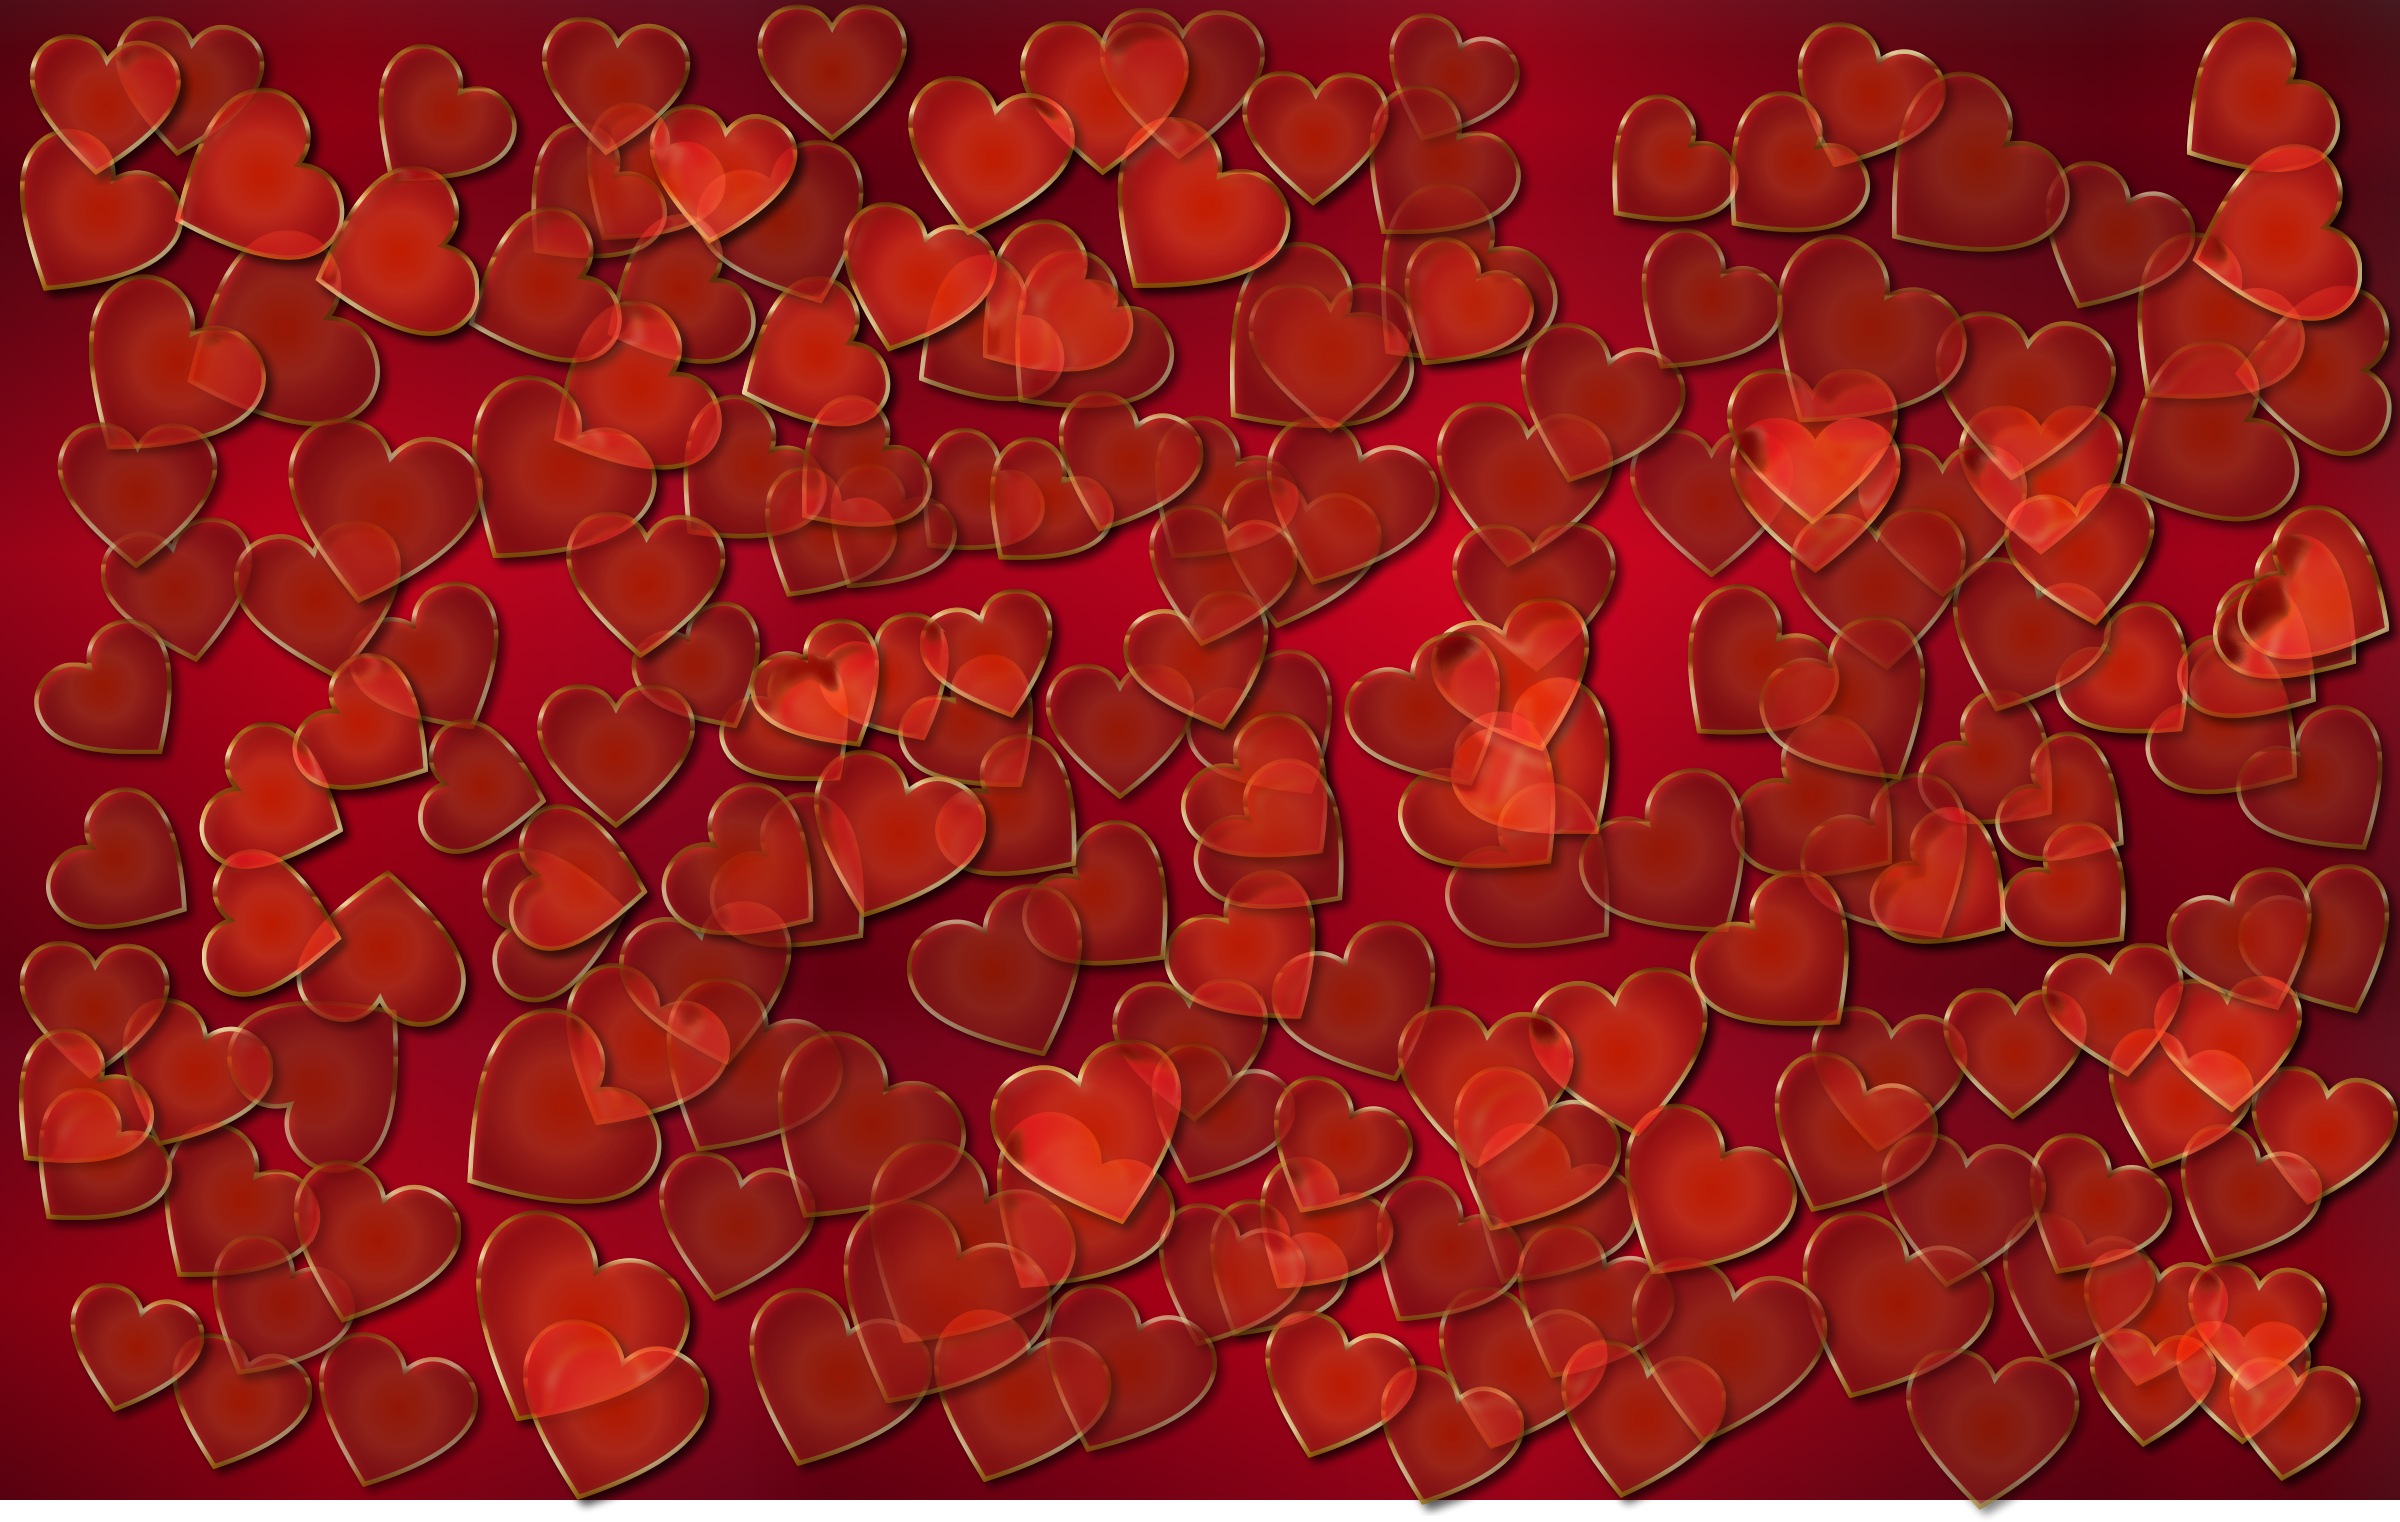 Translucent Hearts Background by GDJ